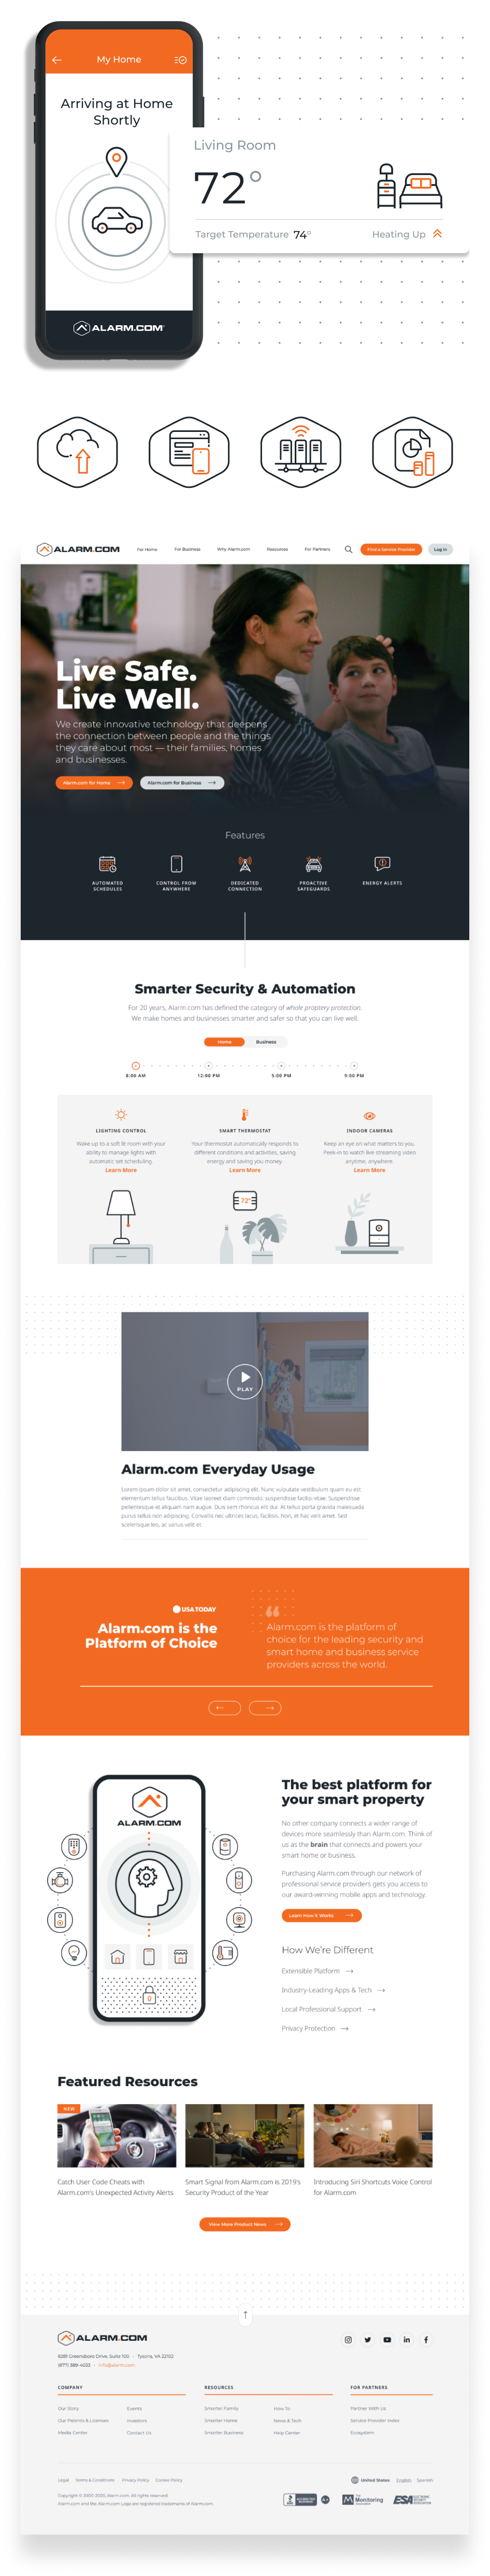 An image of Alarm.com's homepage along with some branding assets and illustrations